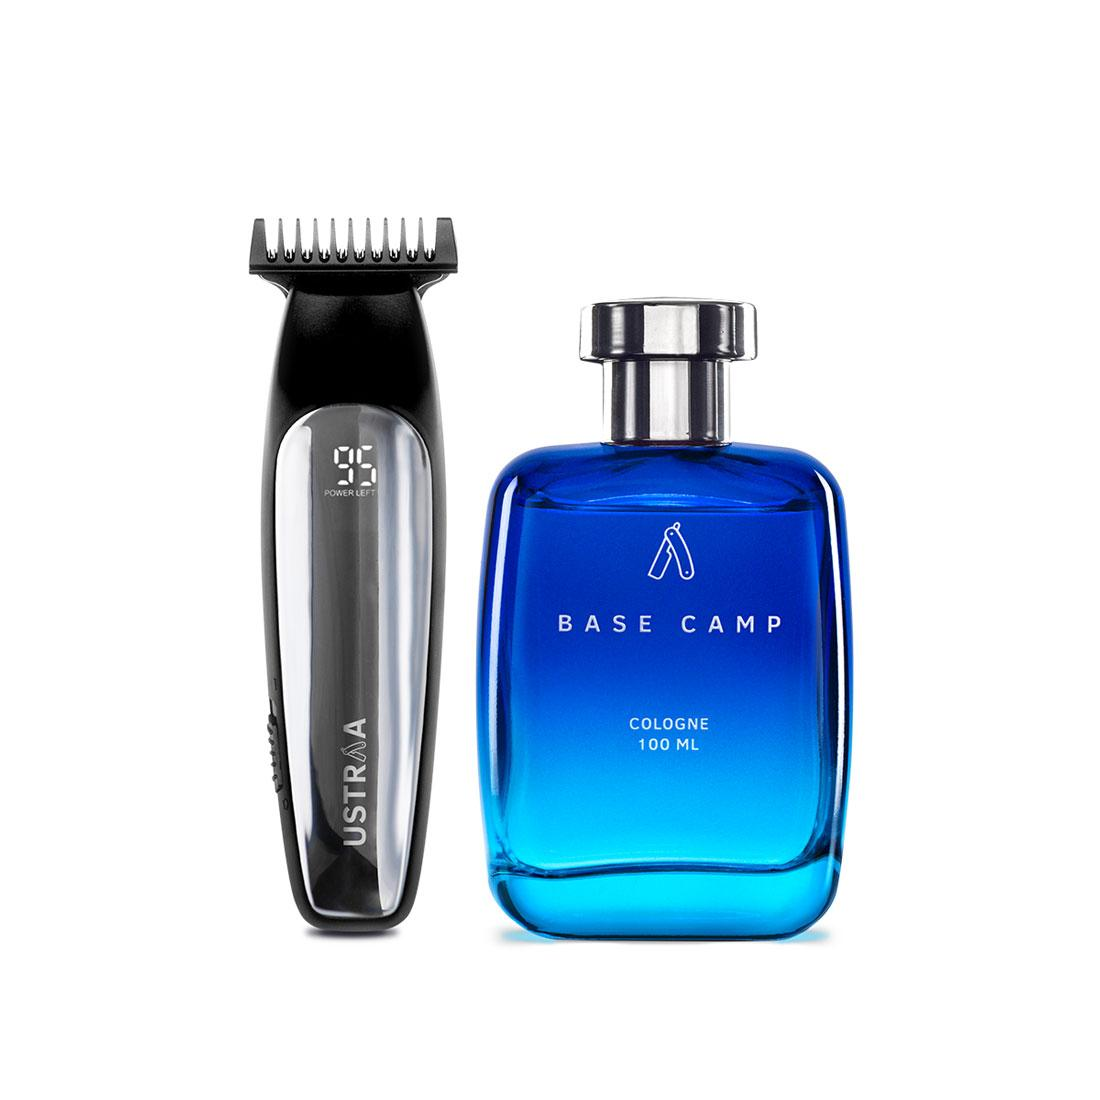 Ustraa Chrome - Lithium Powered Beard Trimmer & Cologne Base Camp